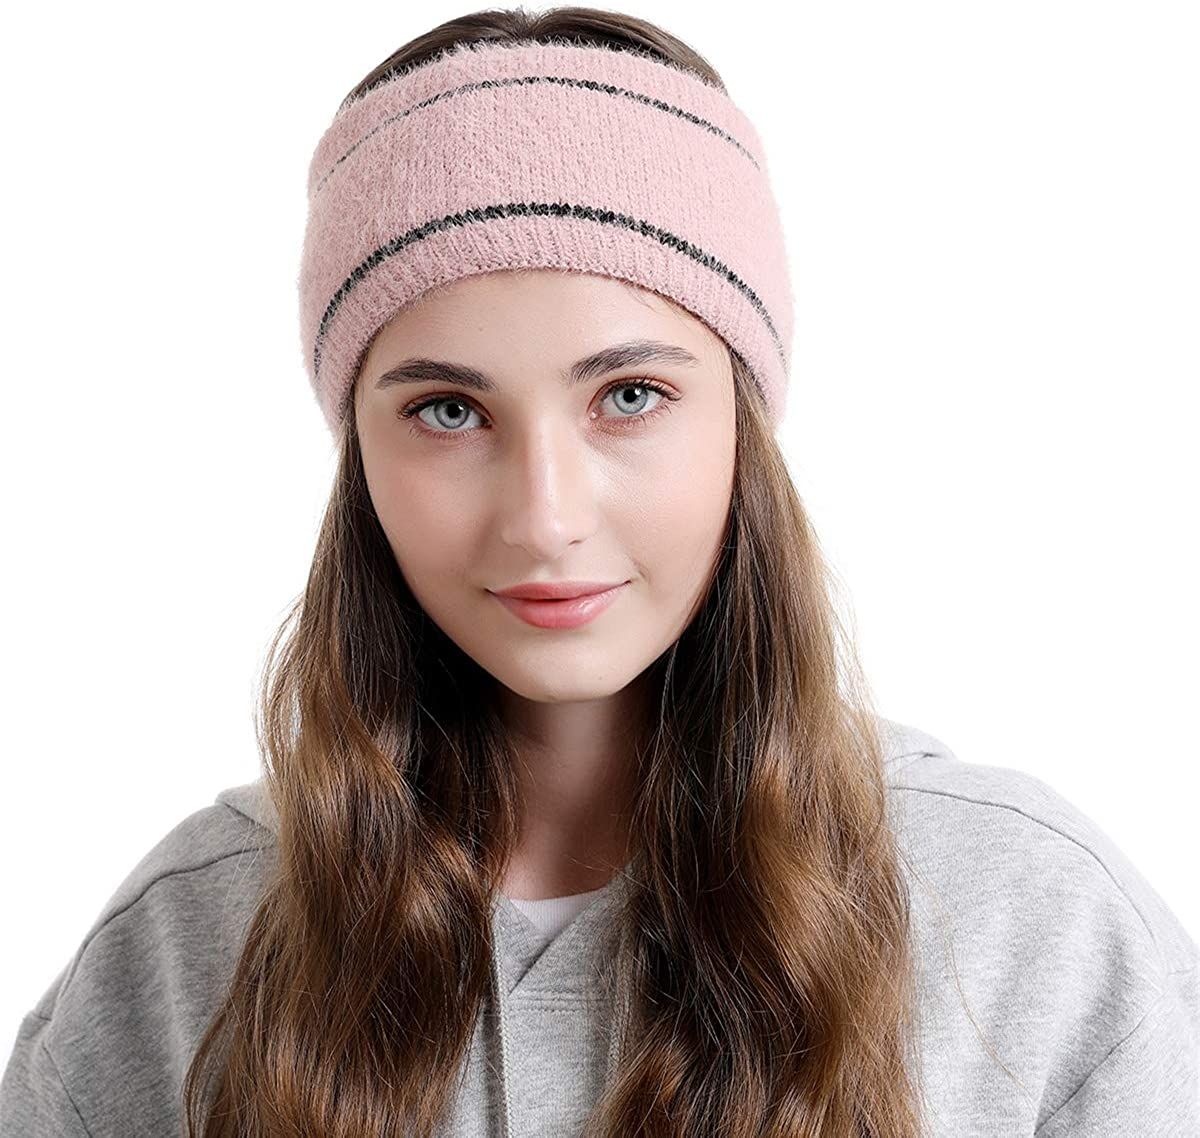 Winter Warm Headband for Women,Ear Warmers,Warm Inside Plush Cable Knitted Hair Band,Cold Weather Hair Accessories Gift